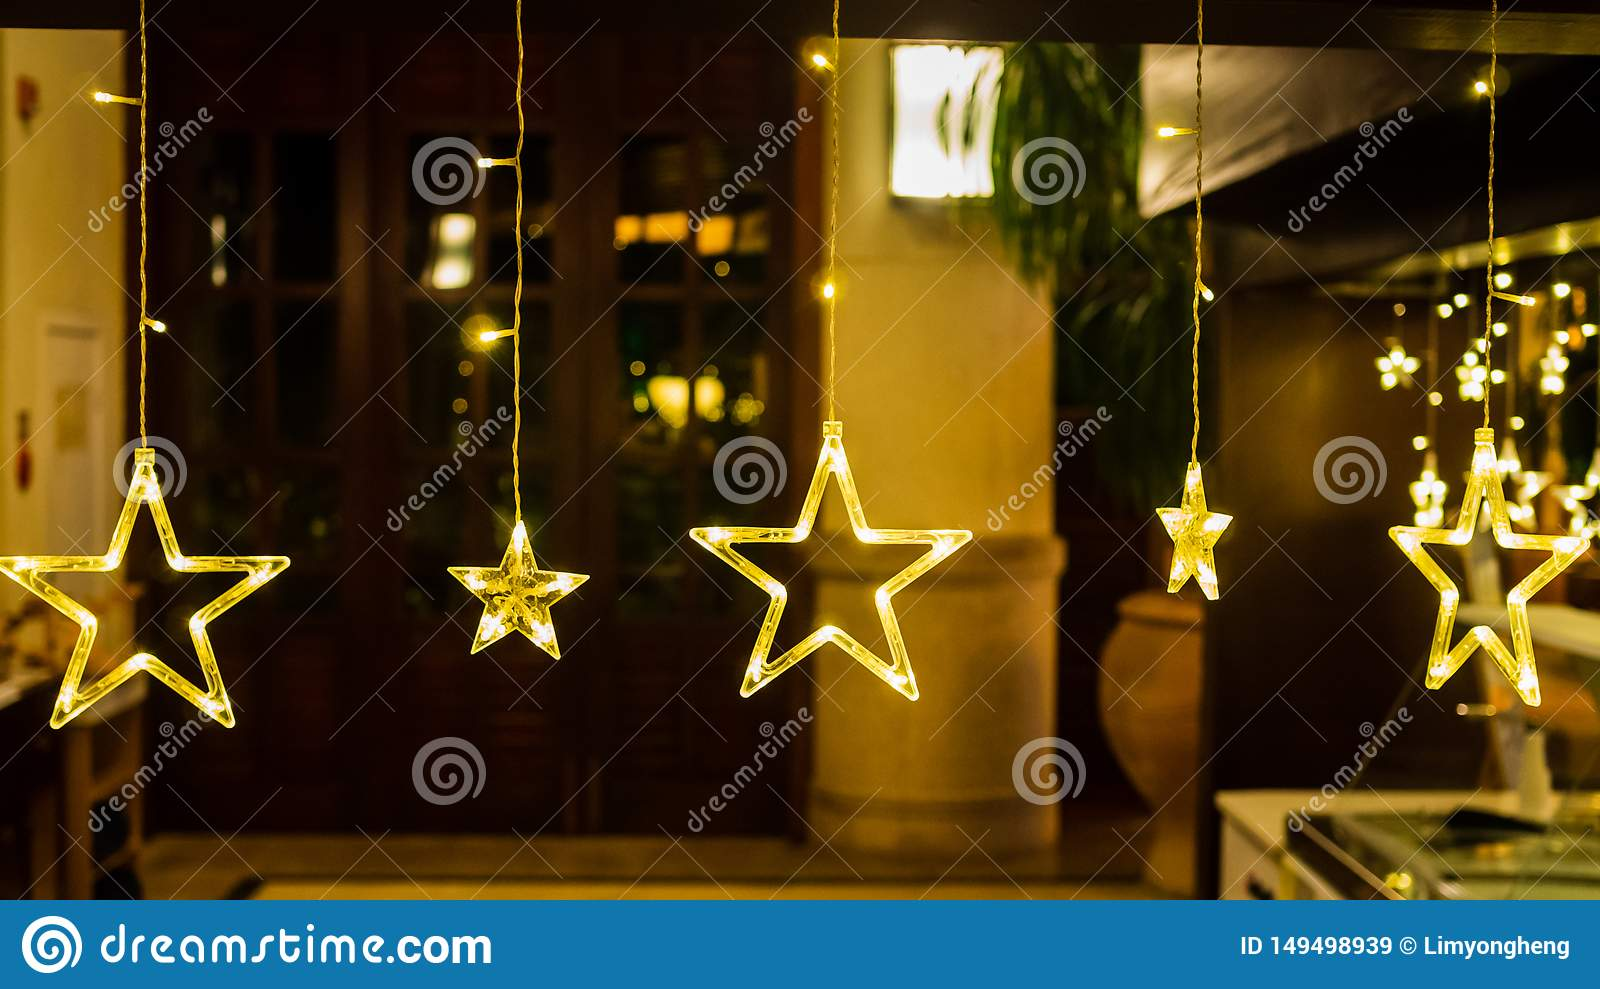 Electric stars with warm yellow lights against a diffused backdrop